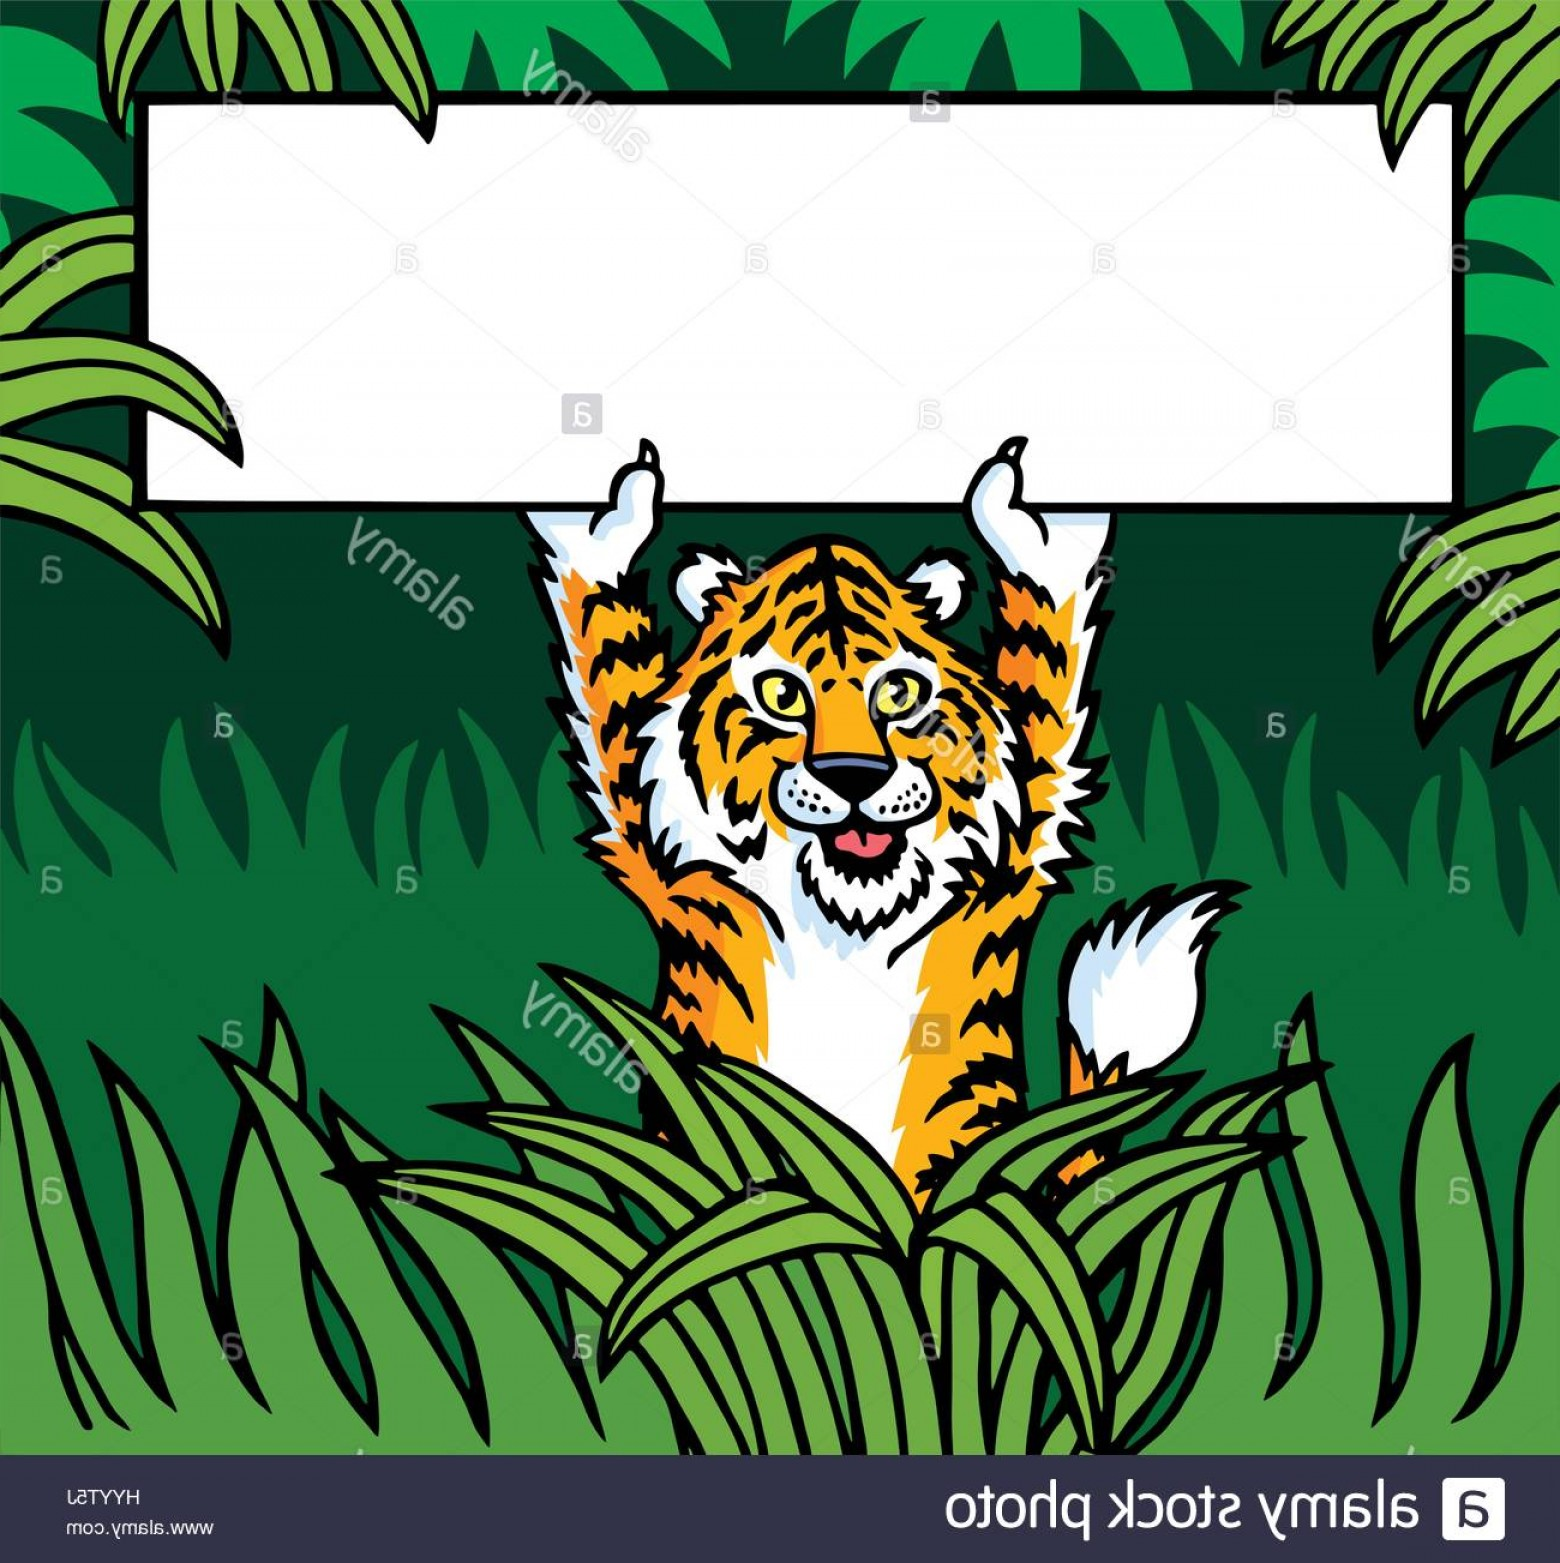 Green Tiger Vector: Stock Photo Tiger Holding A Sign Vector Illustration